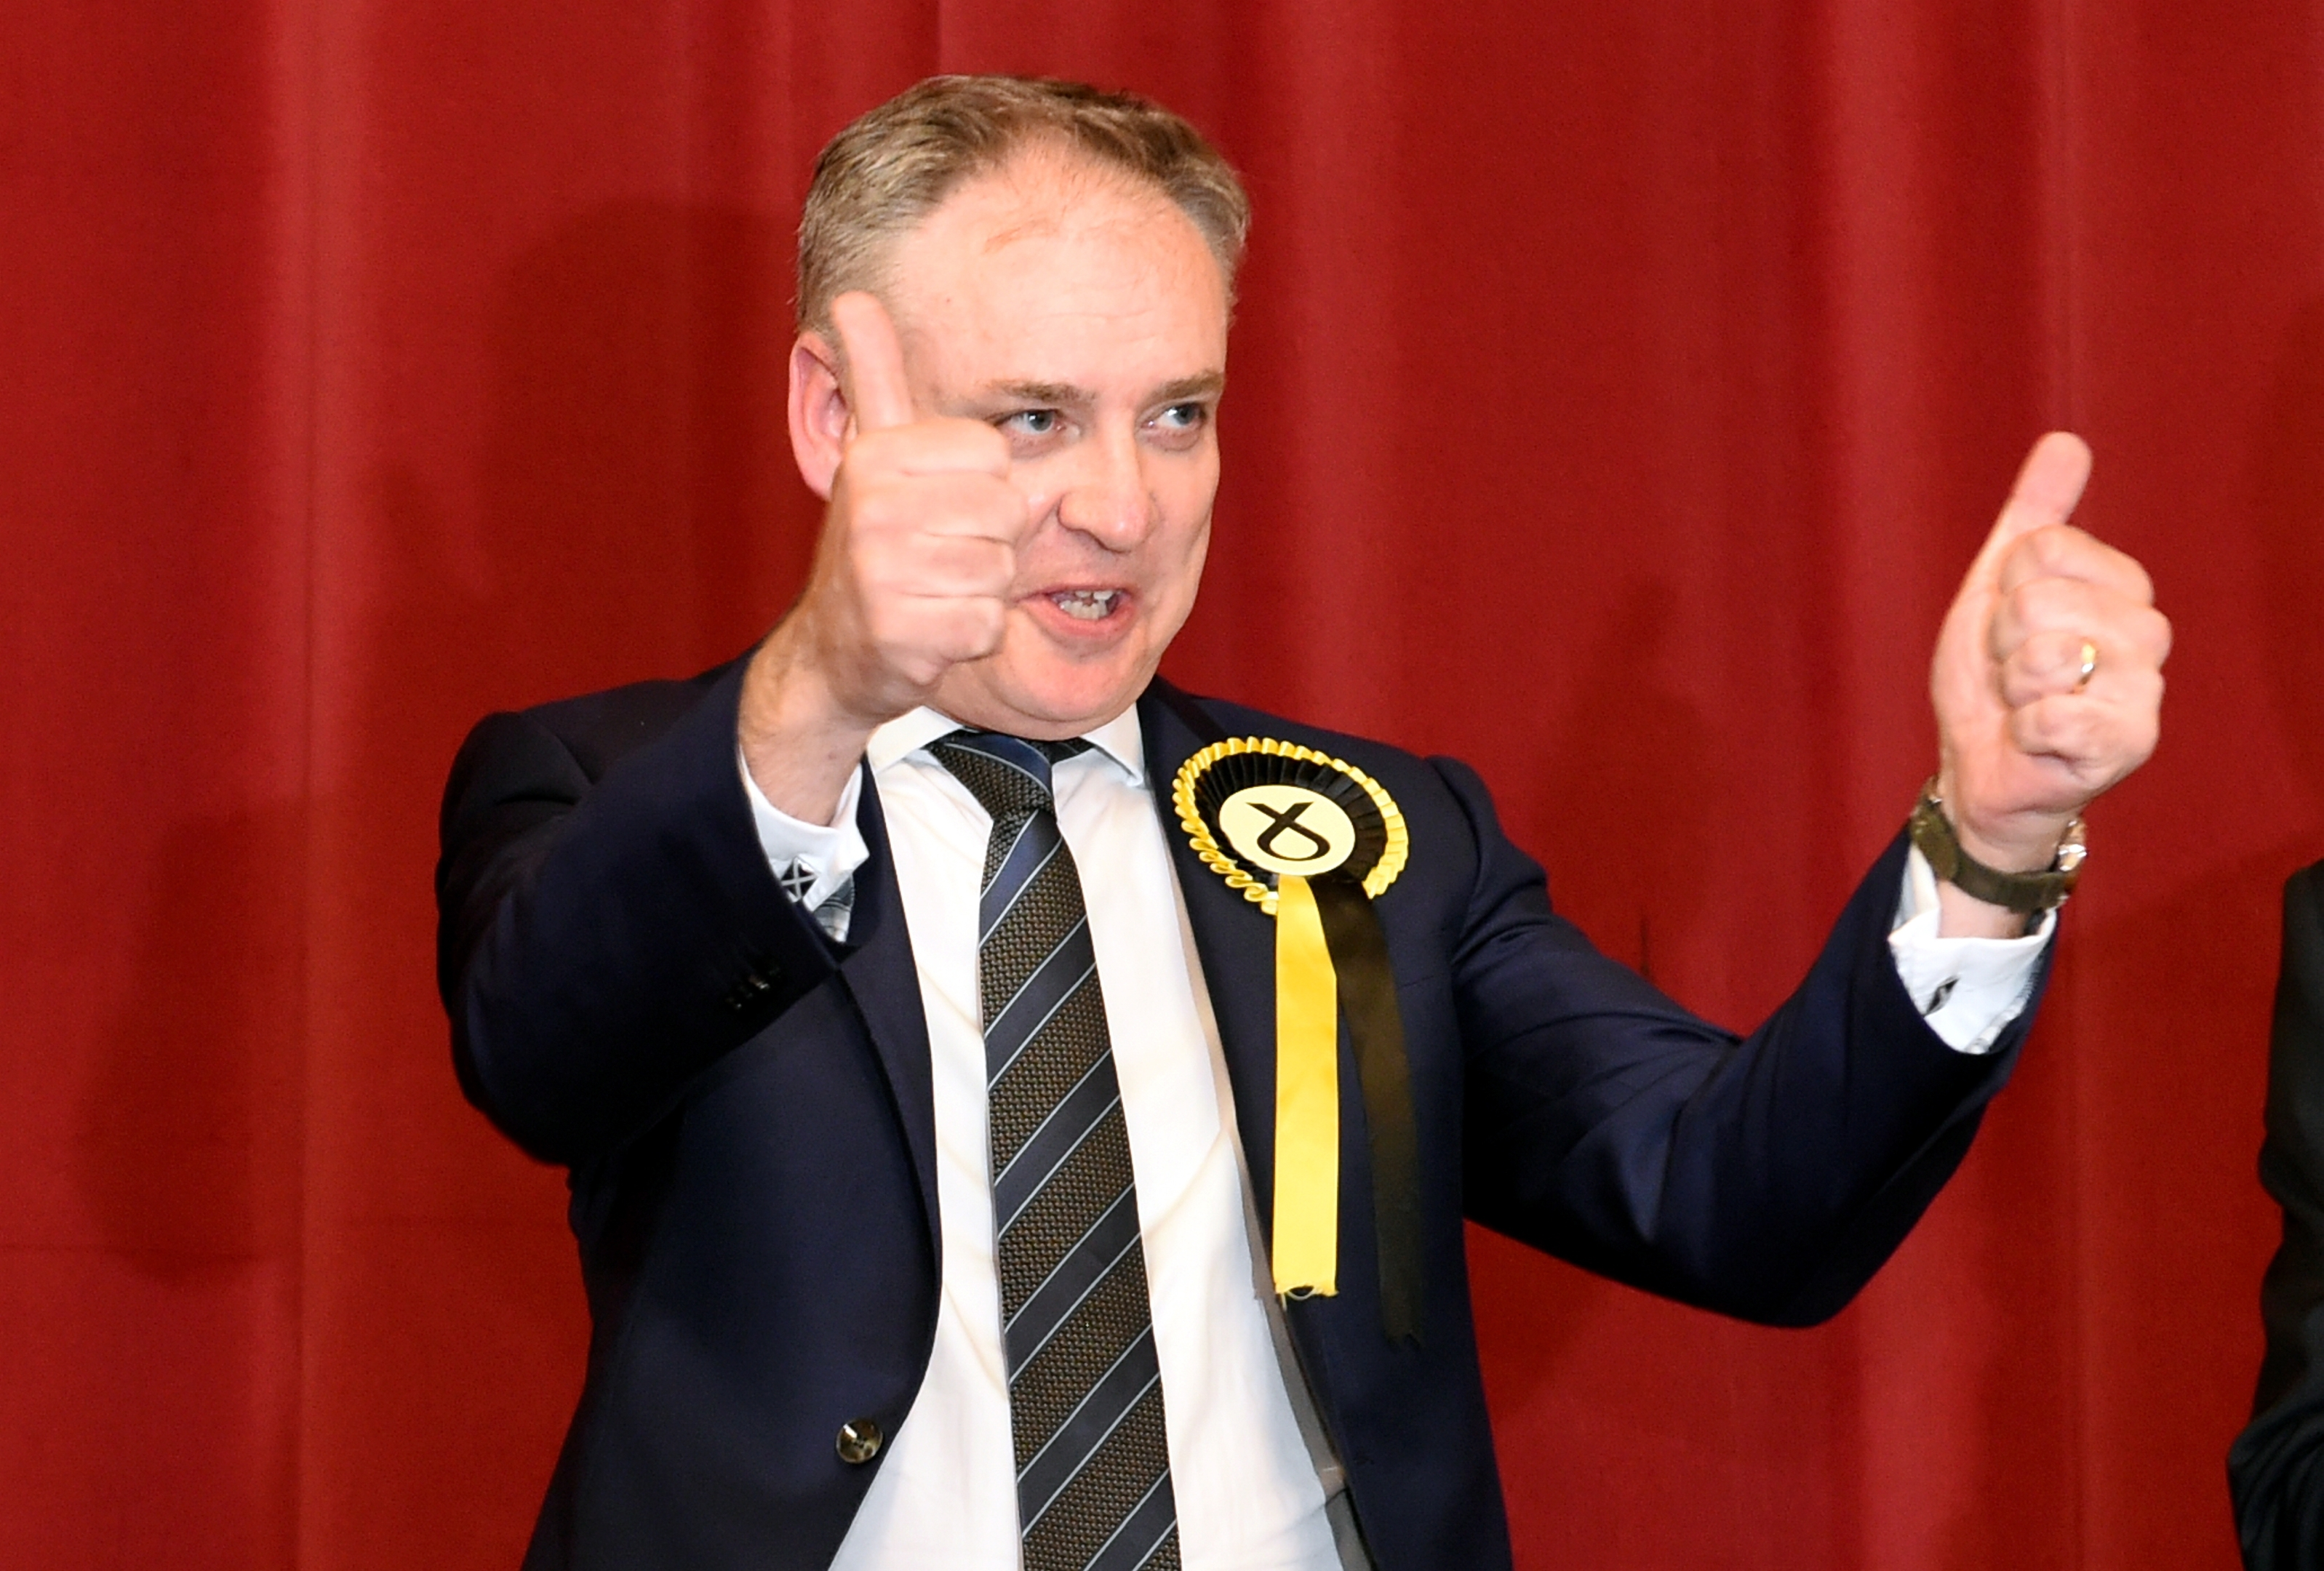 Richard Lochhead, SNP, at Elgin Town Hall, after winning the Moray vote. Picture by Gordon Lennox